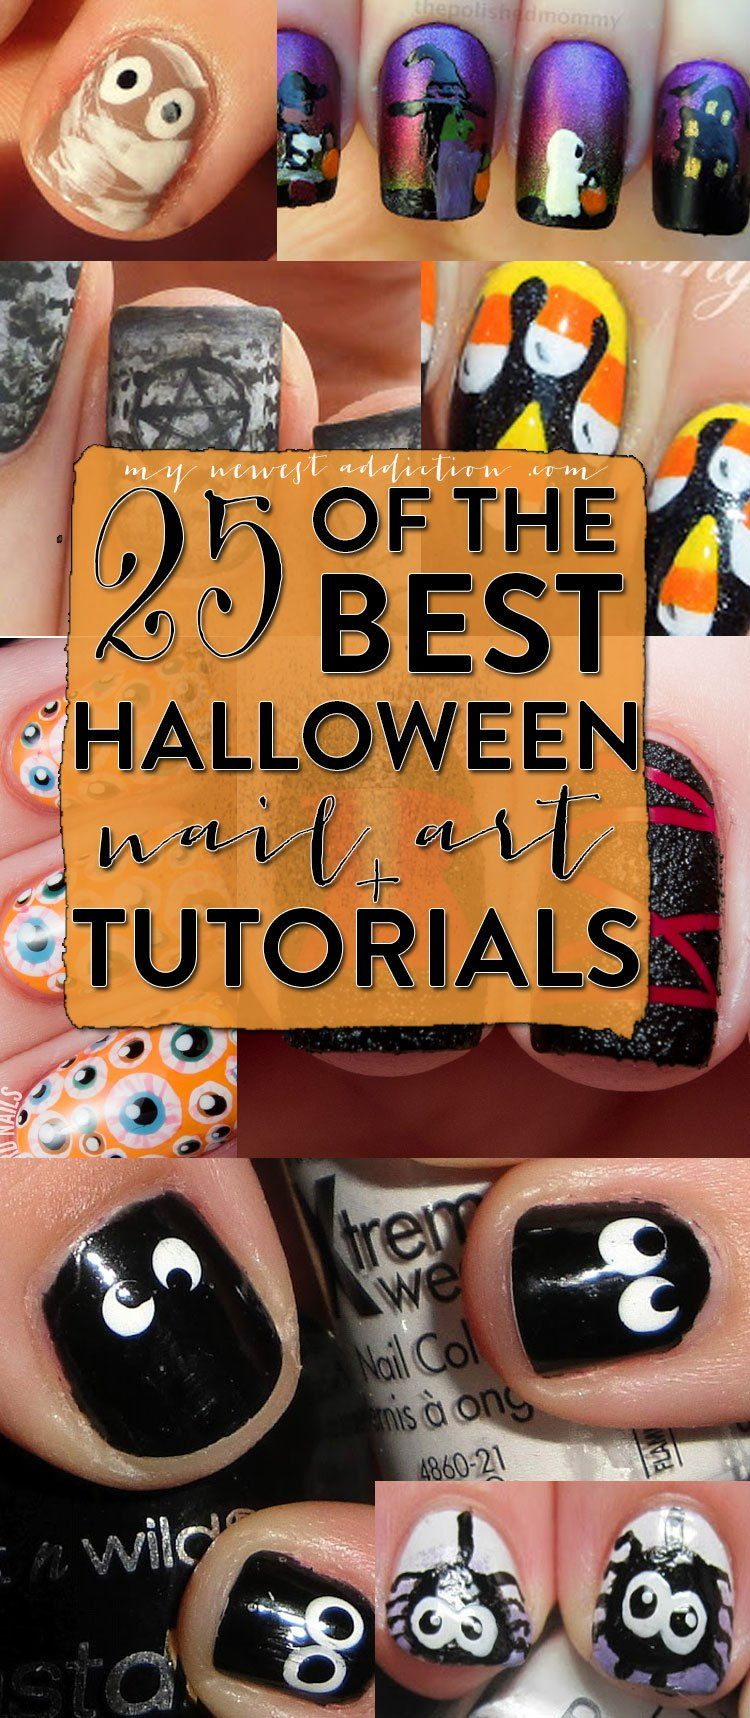 25 Of The Best Halloween Nail Art + Tutorials - My Newest Addiction